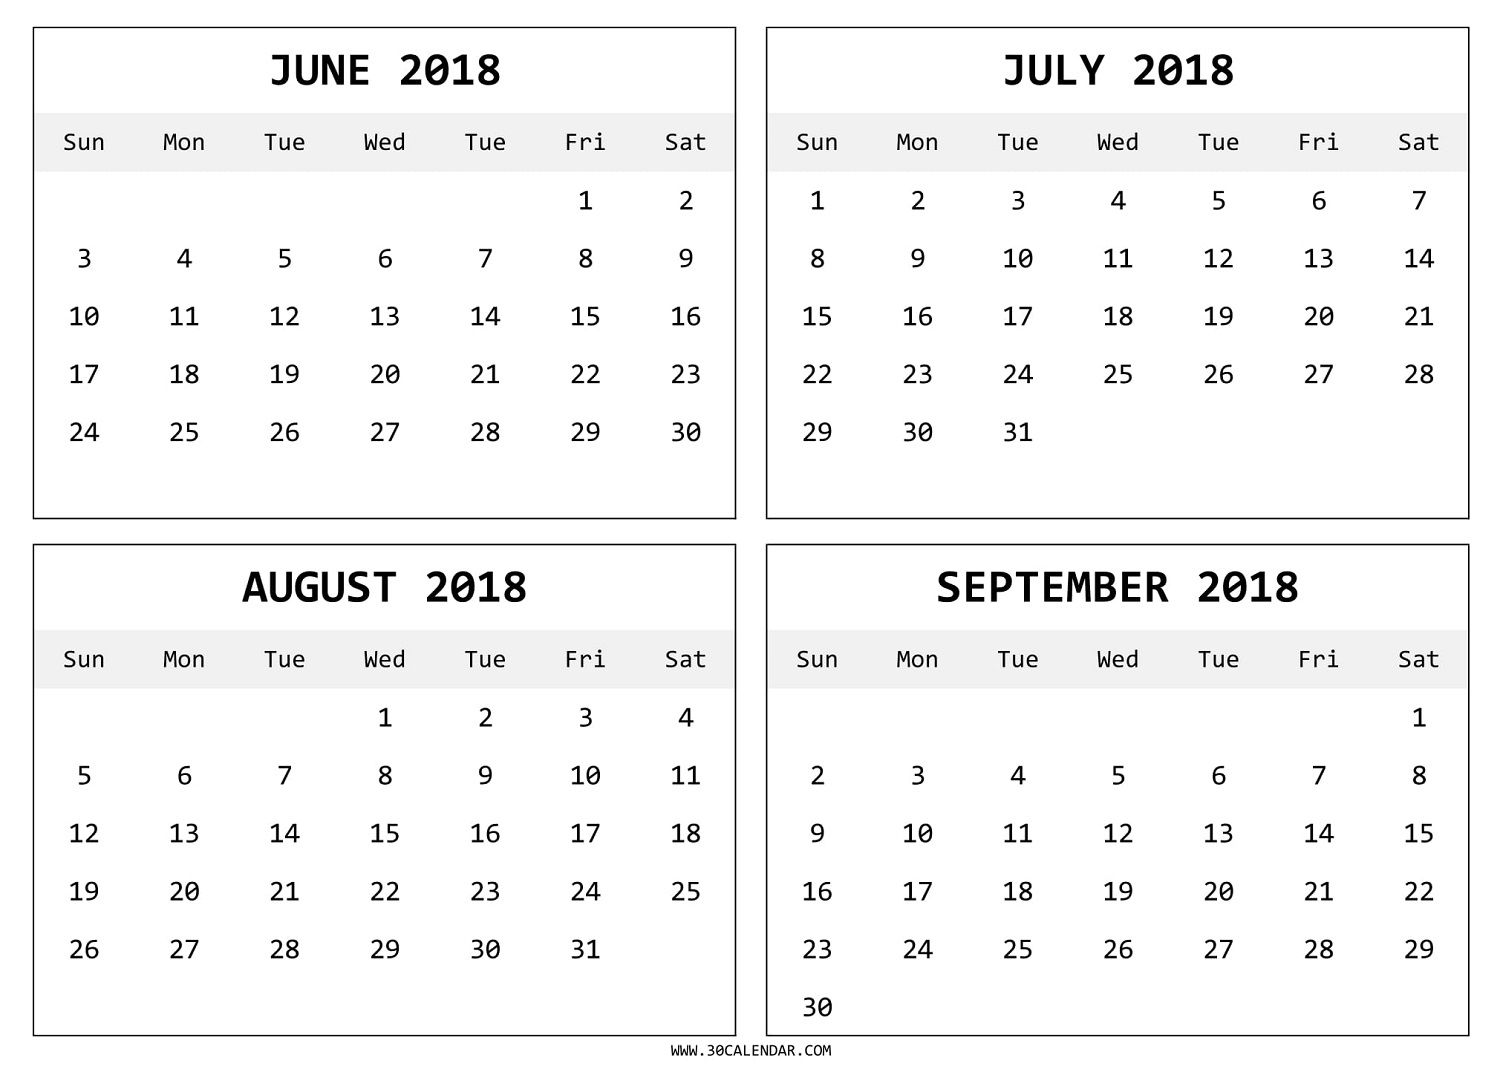 download free june to september 2018 calendar with holidays 2018